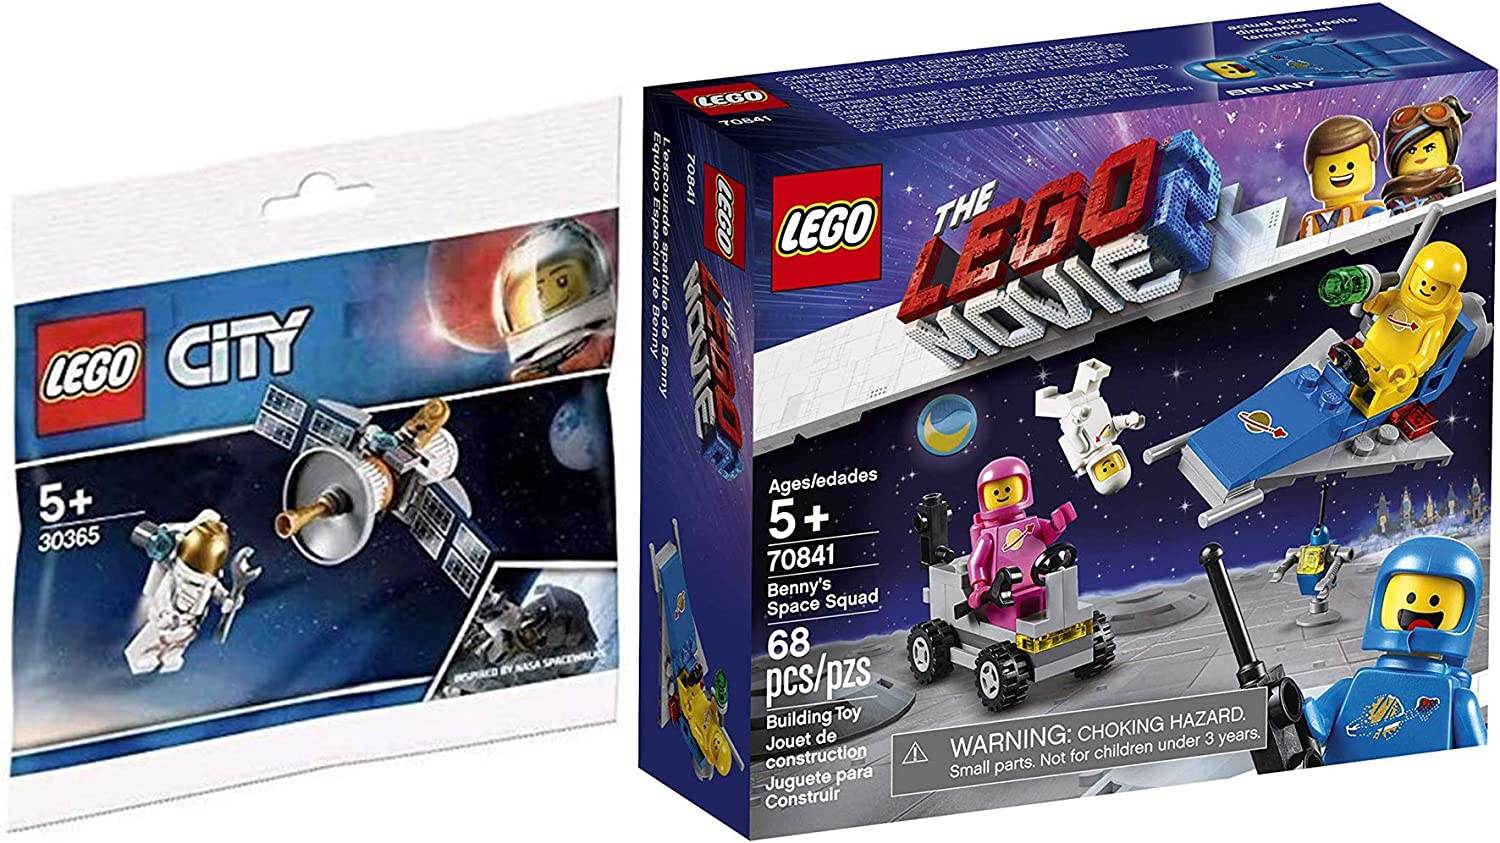 LEGO City Movie Space Set Benny's Squad 70841 Bundled 30365 Satellite Inspired by NASA Spacewalks polybag 2 Items